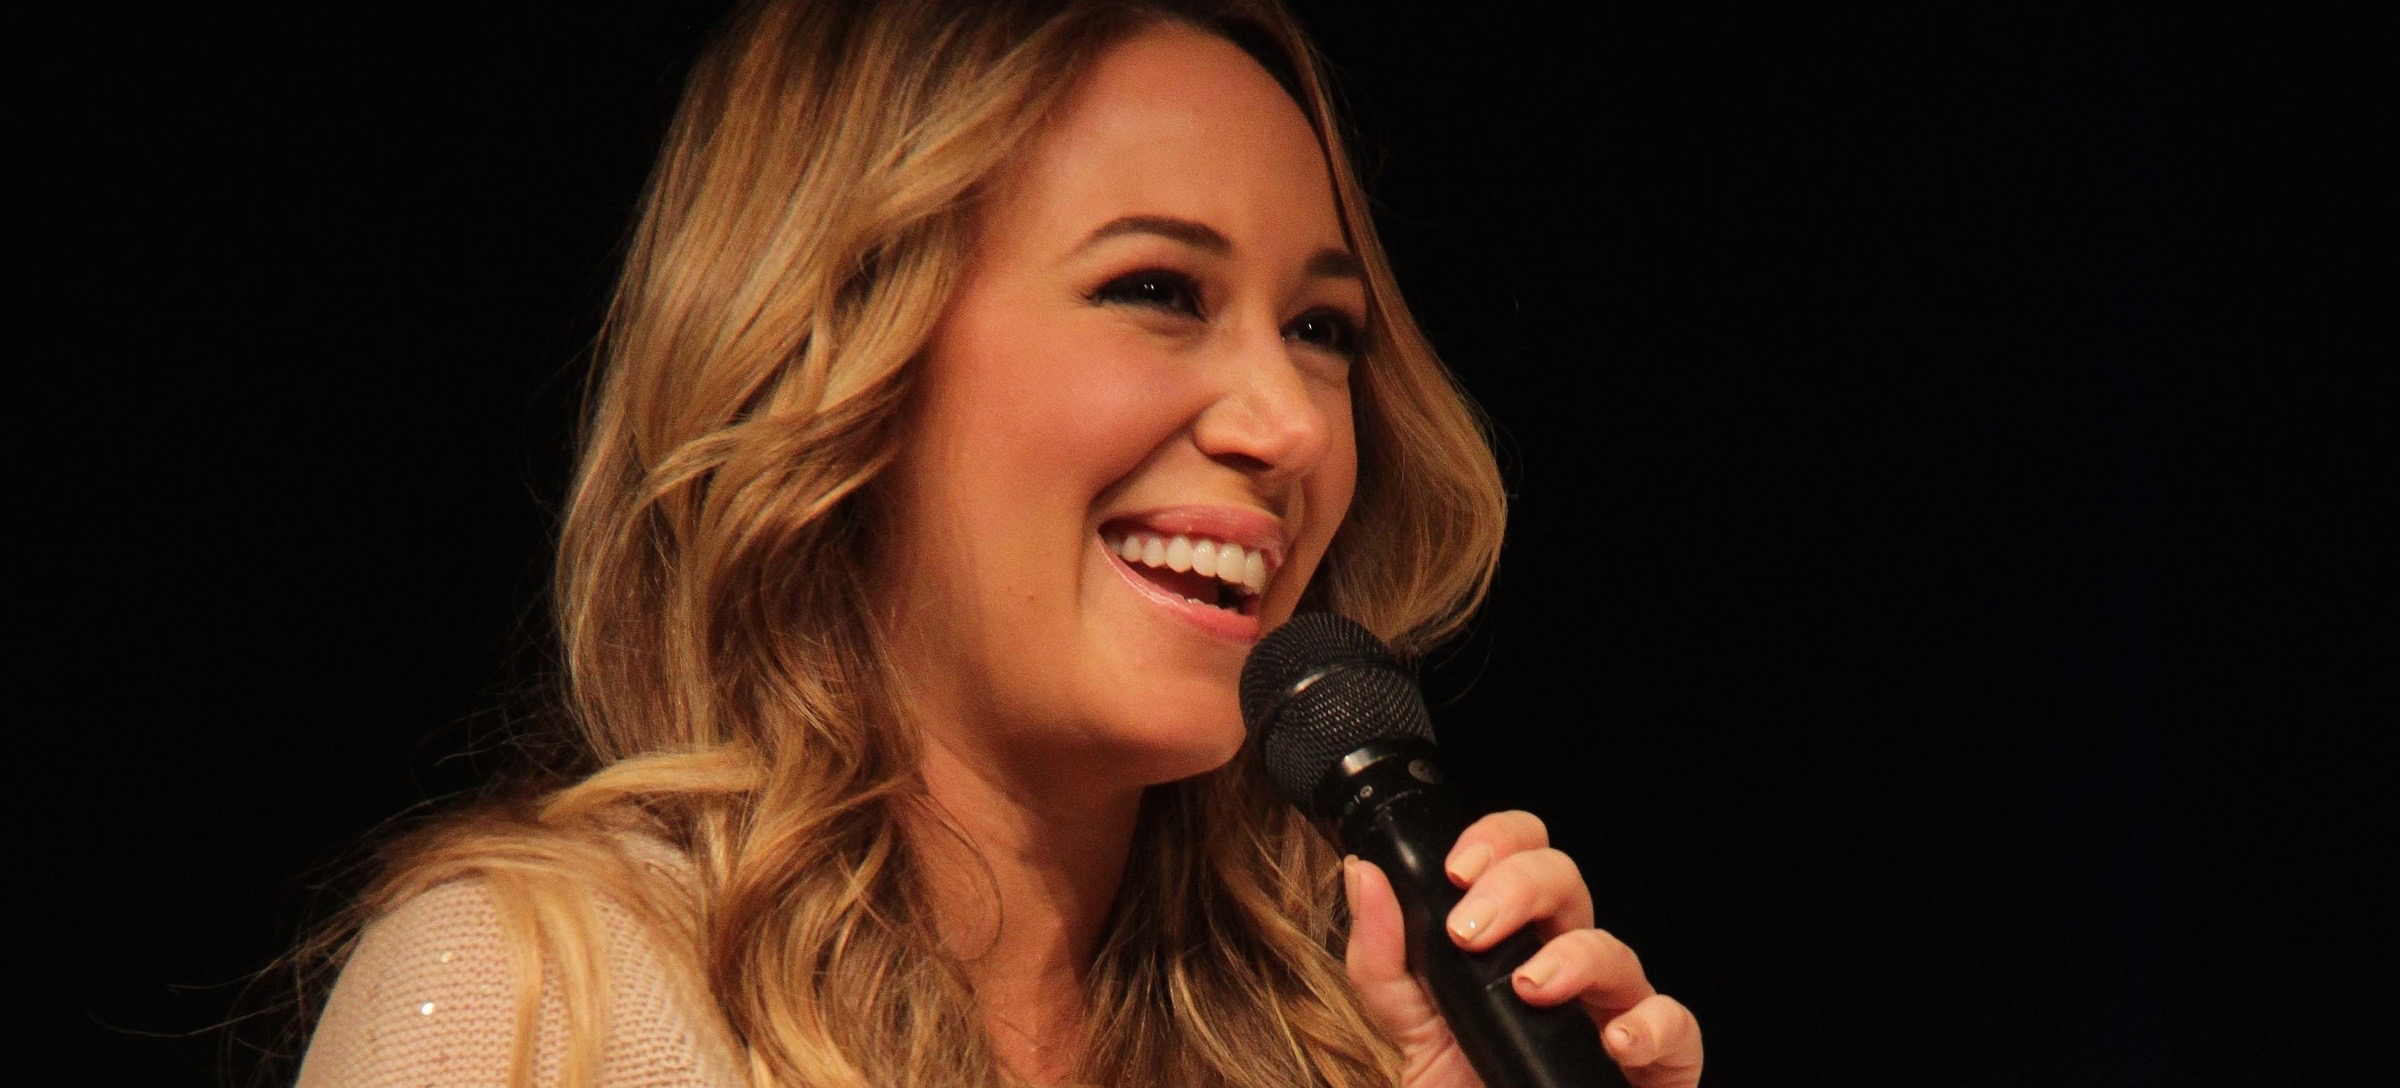 Haylie Duff's Happy, Healthy, Glowing Skin Tips